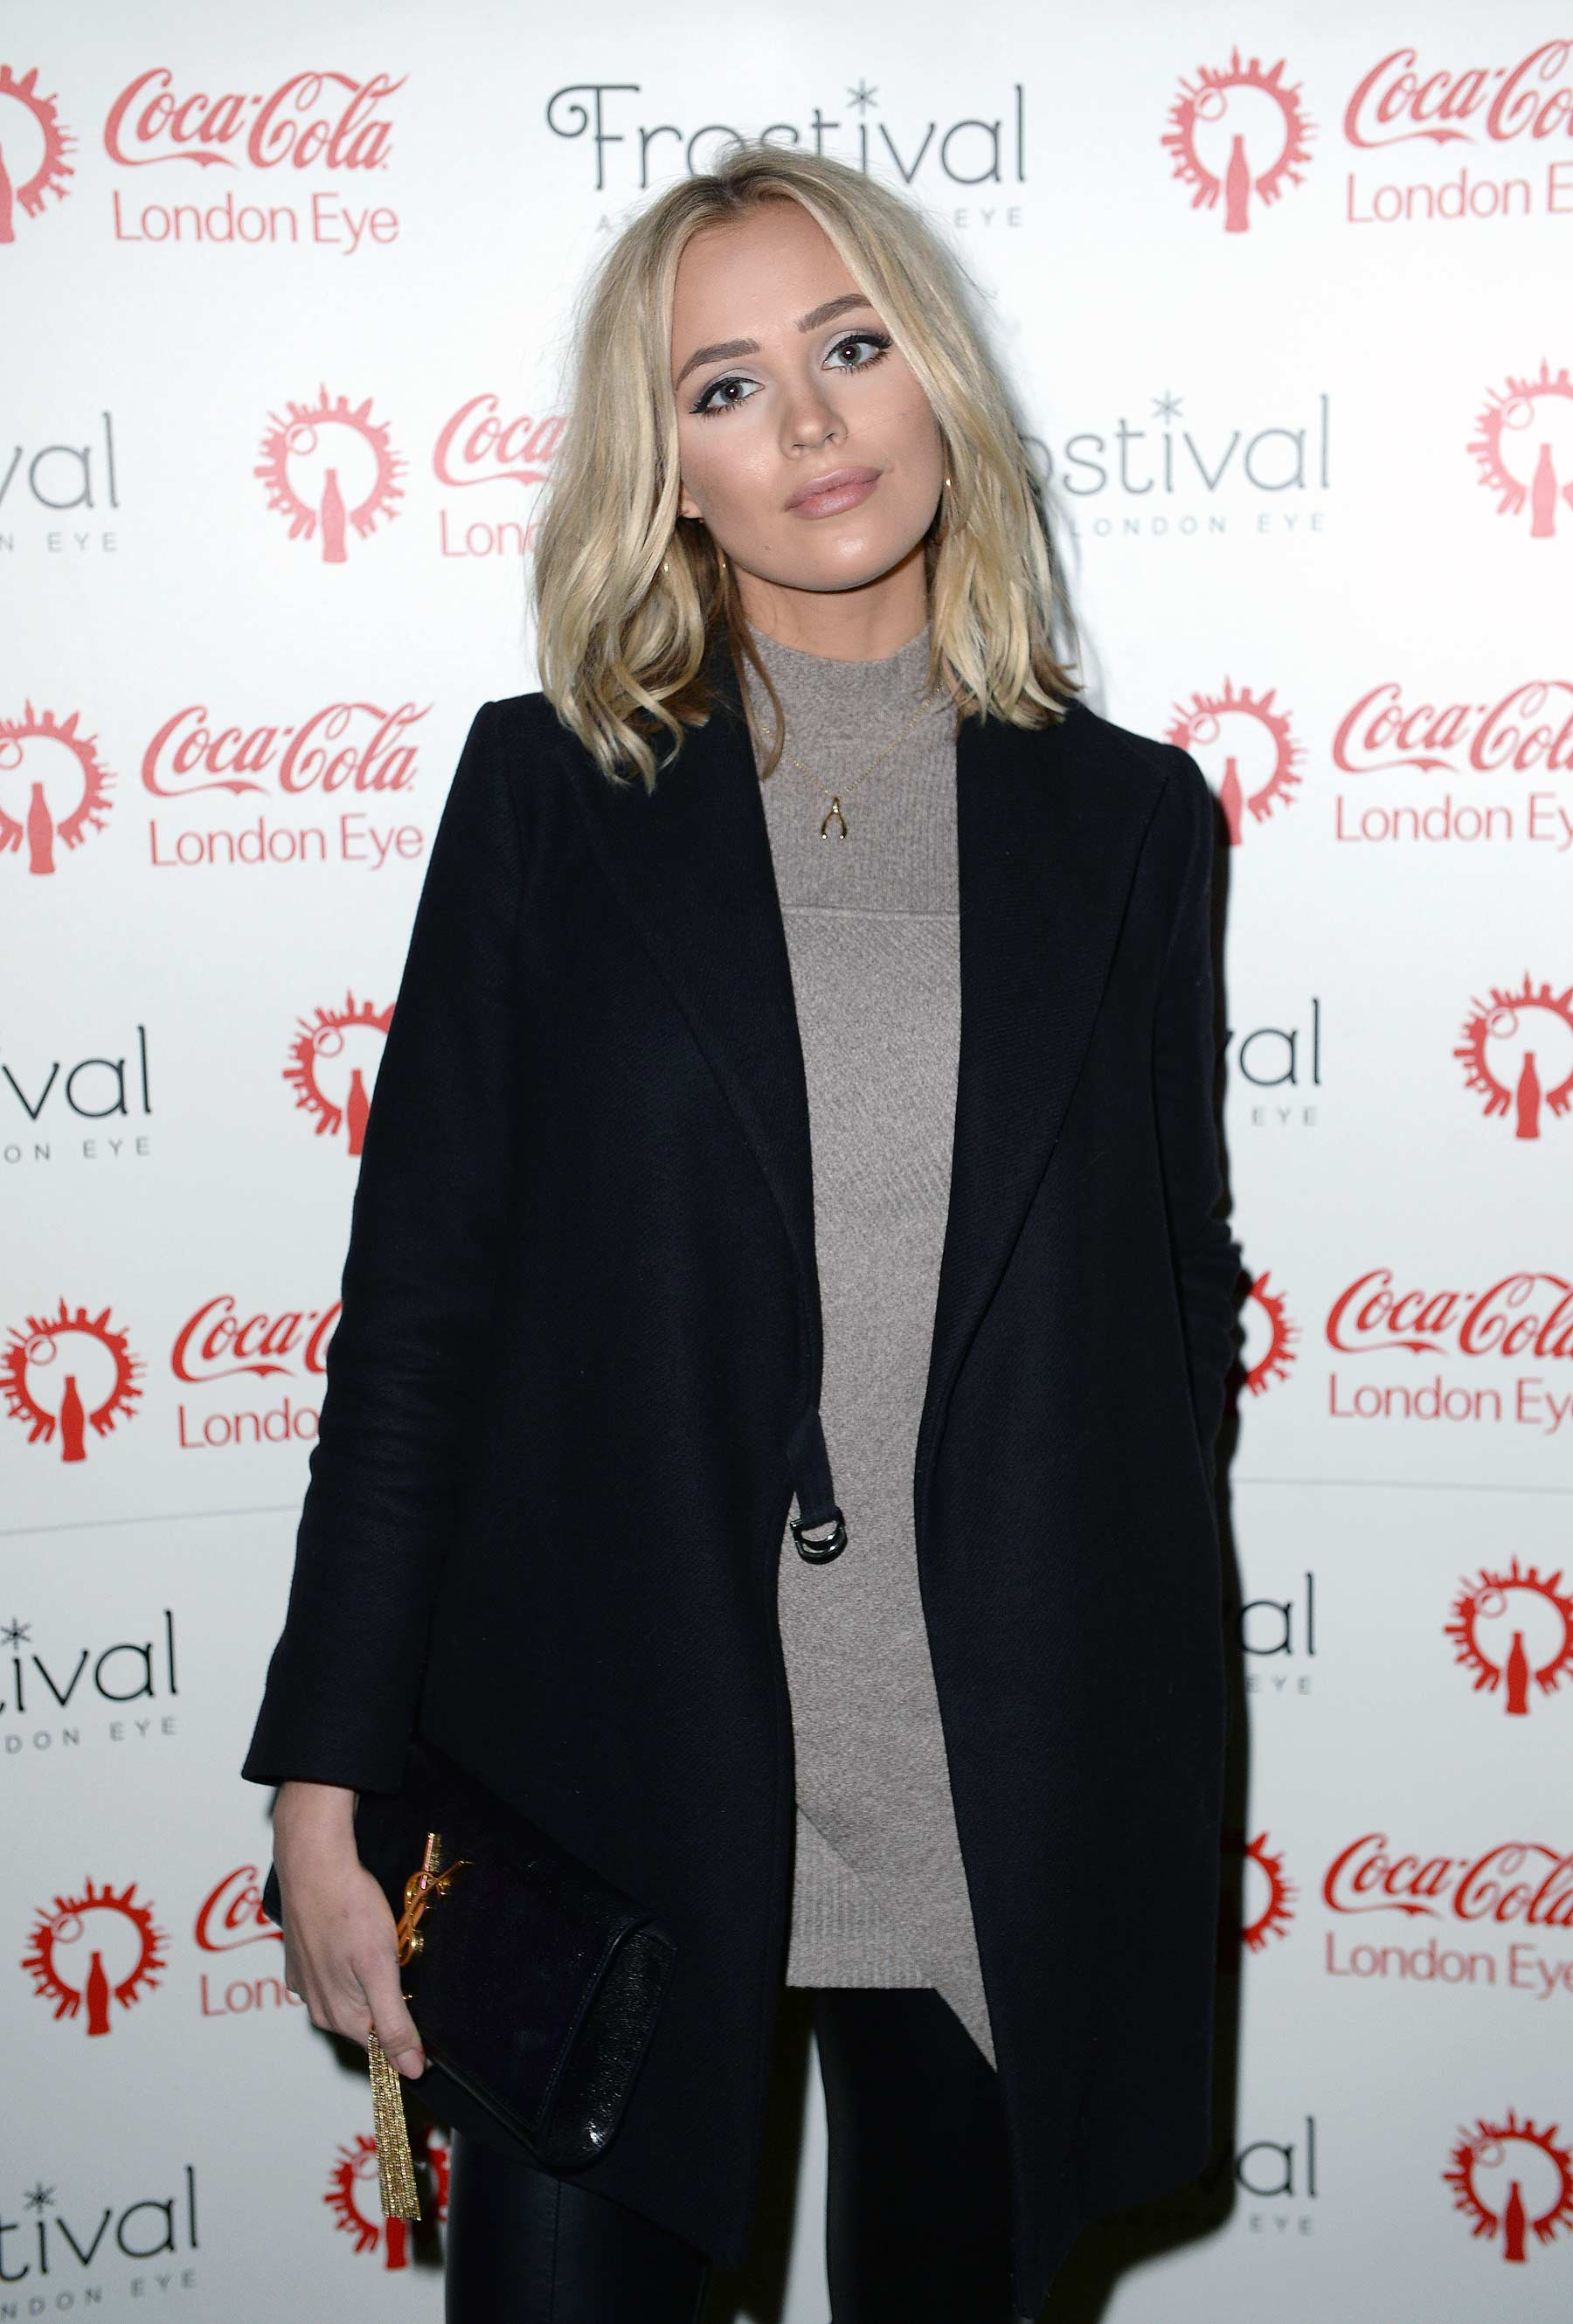 Ianthe Rose Cochrane attends Coca Cola London Eye Frostival Eyeskate